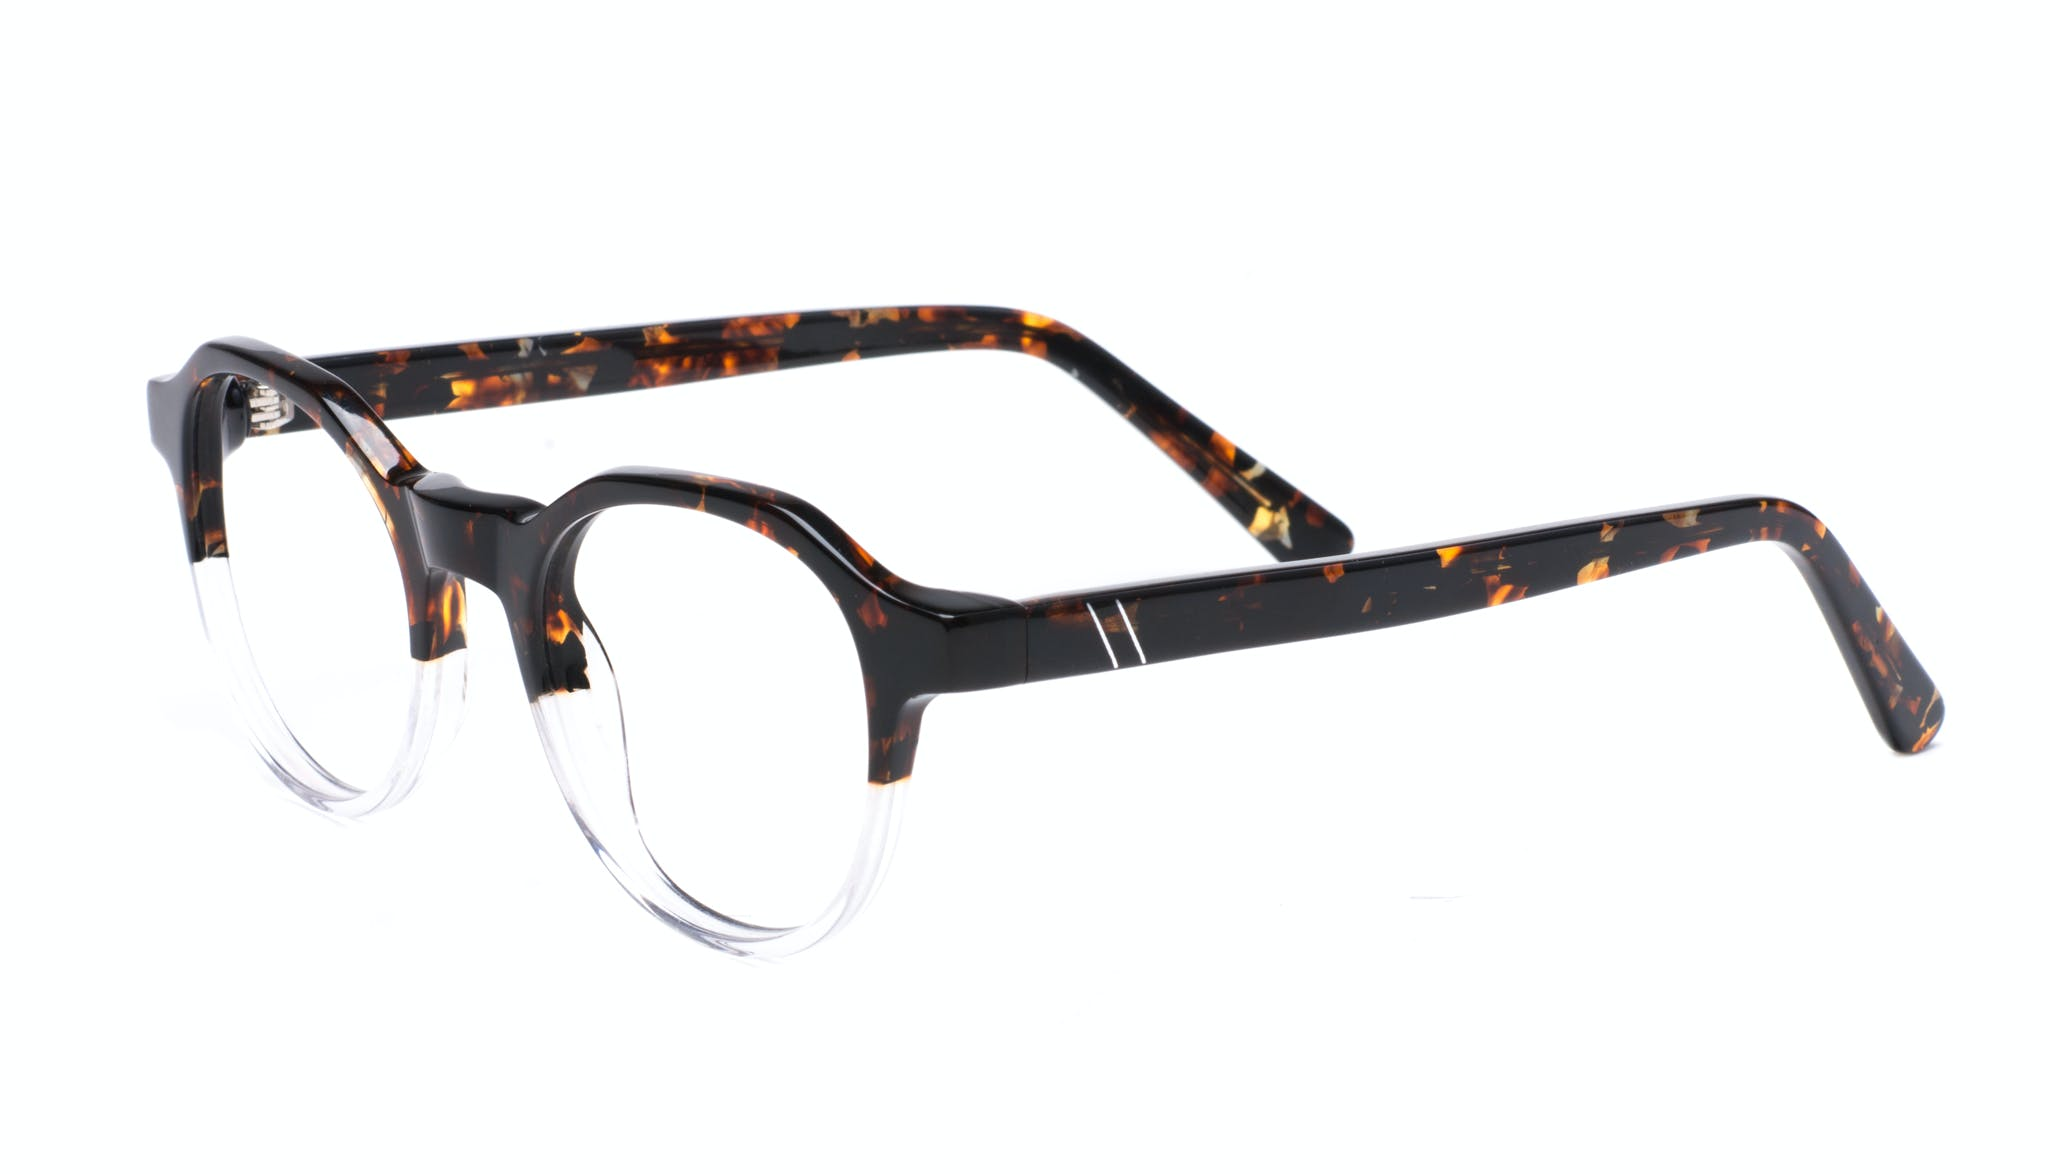 Affordable Fashion Glasses Round Eyeglasses Men Form Mahogany Clear Tilt